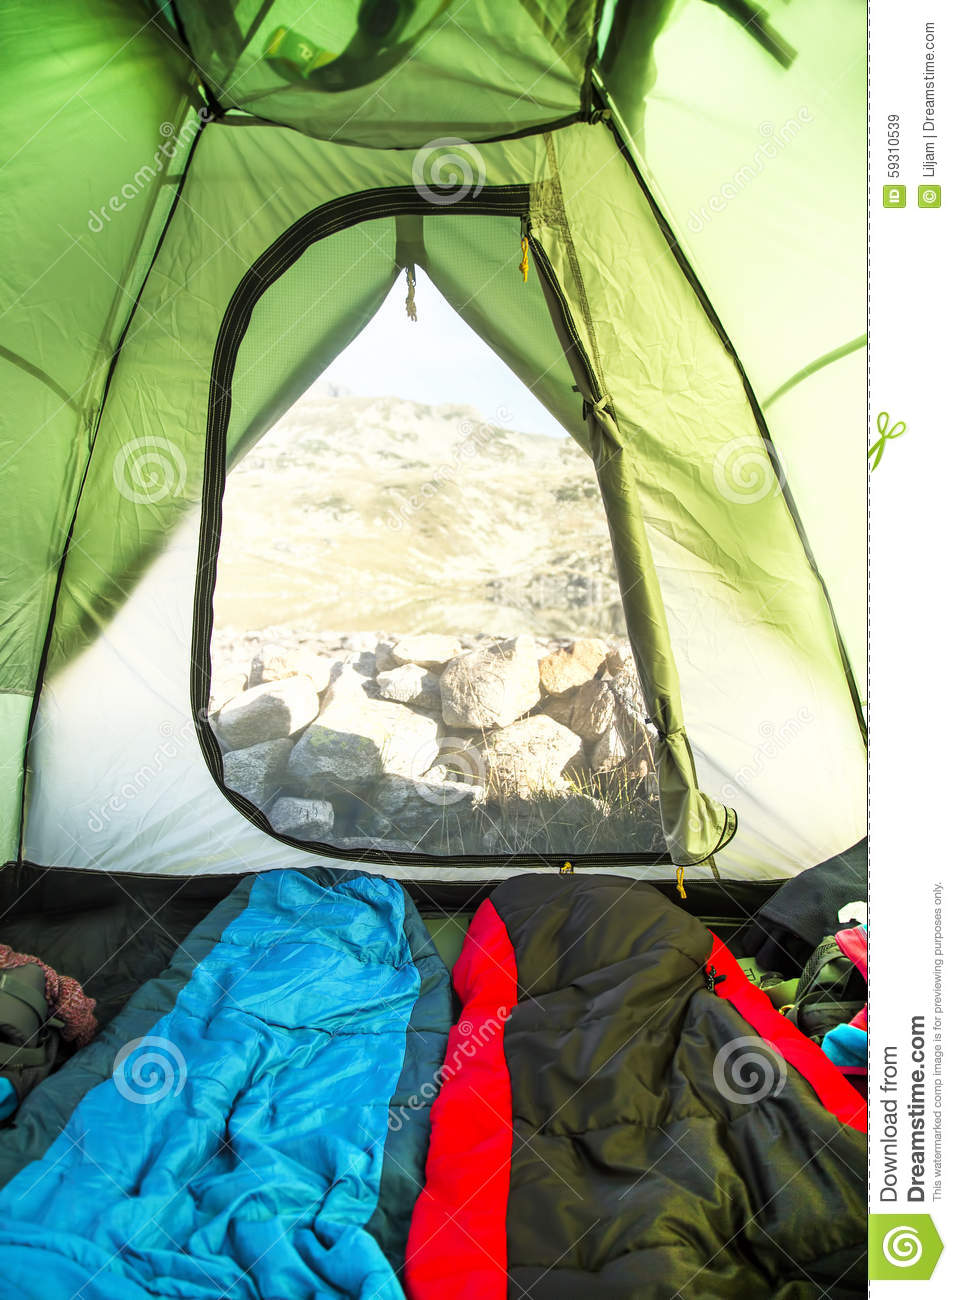 Mountain Camping Tent Inside View Stock Image - Image of